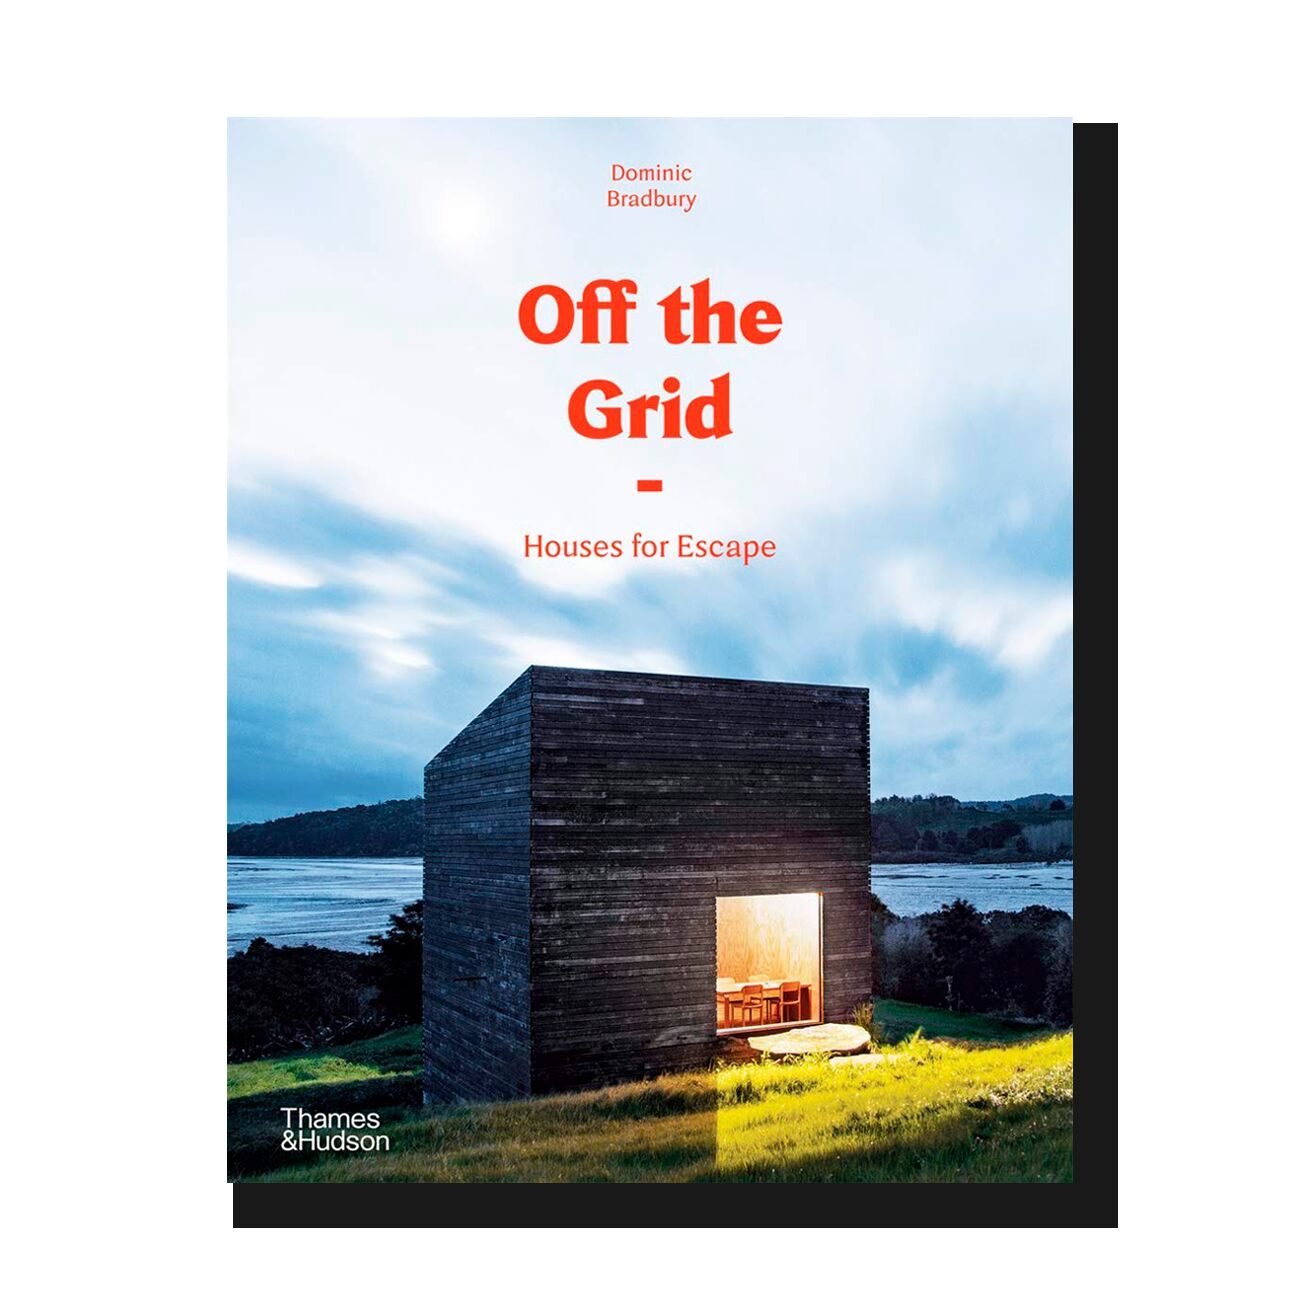 Off the Grid: Houses for Escape